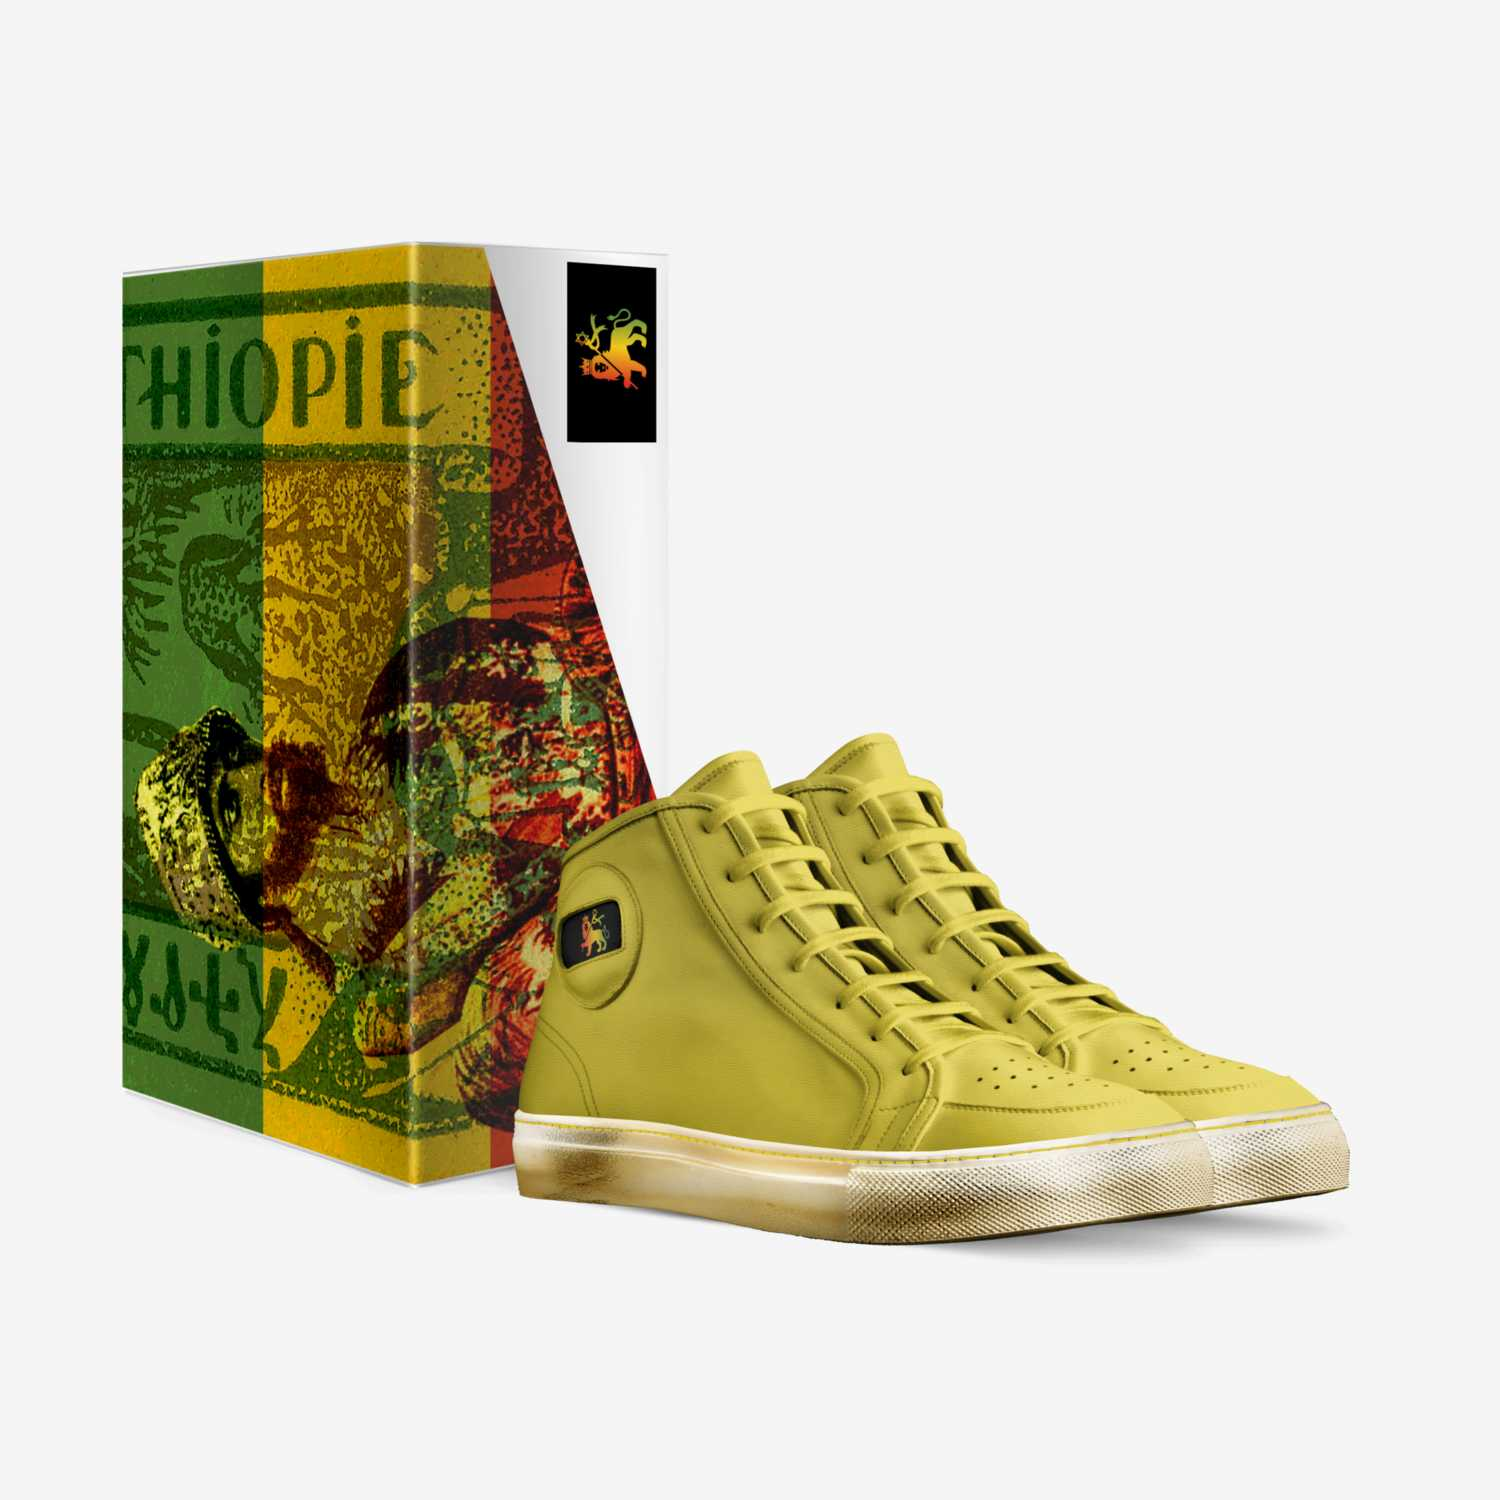 Rasta Gold custom made in Italy shoes by Rasta Gear Shop | Box view